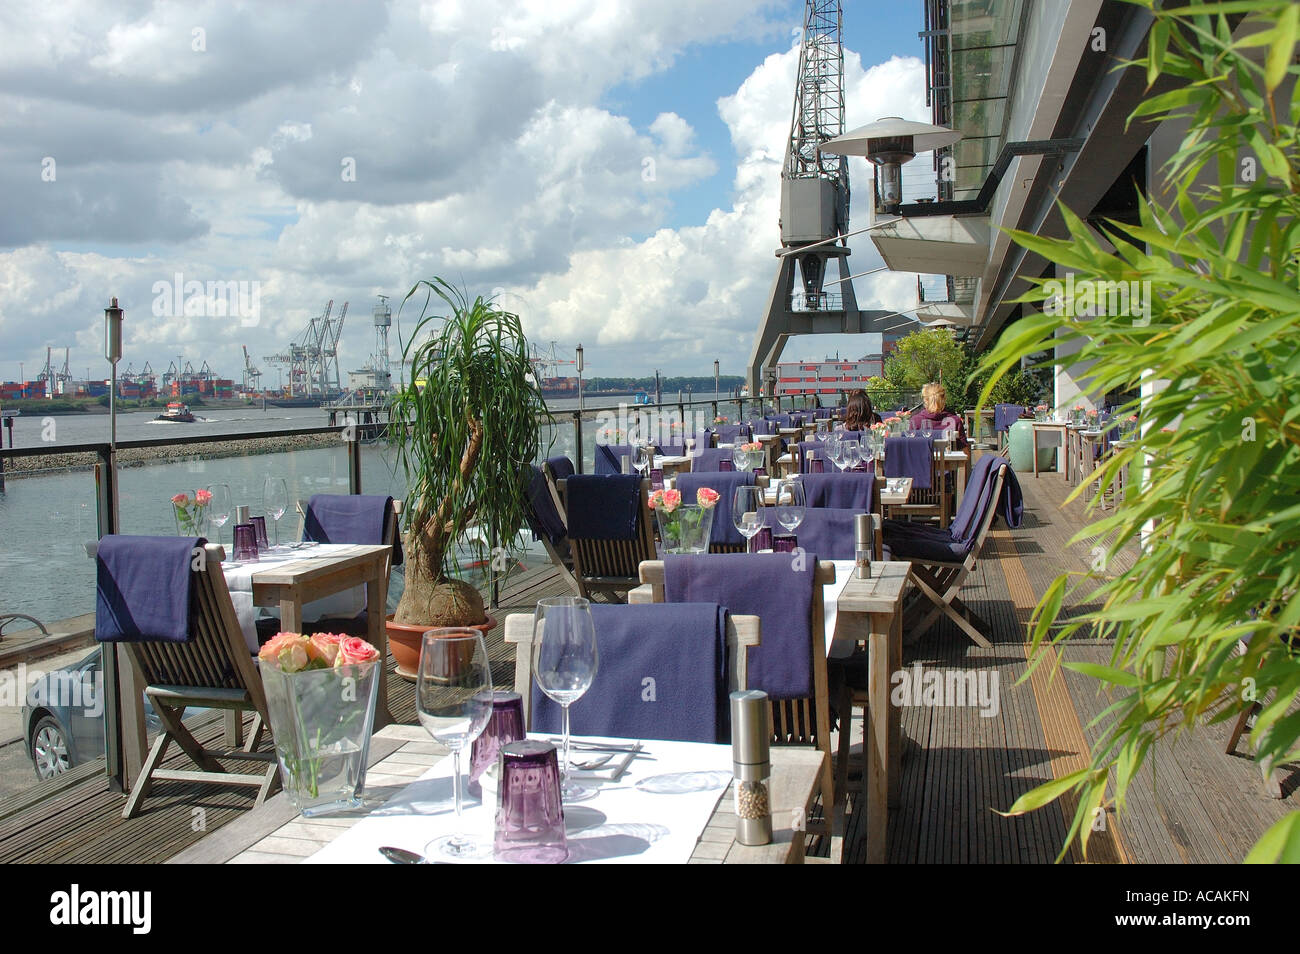 terrace restaurant au quai at the elbe river altona hamburg stock photo royalty free image. Black Bedroom Furniture Sets. Home Design Ideas